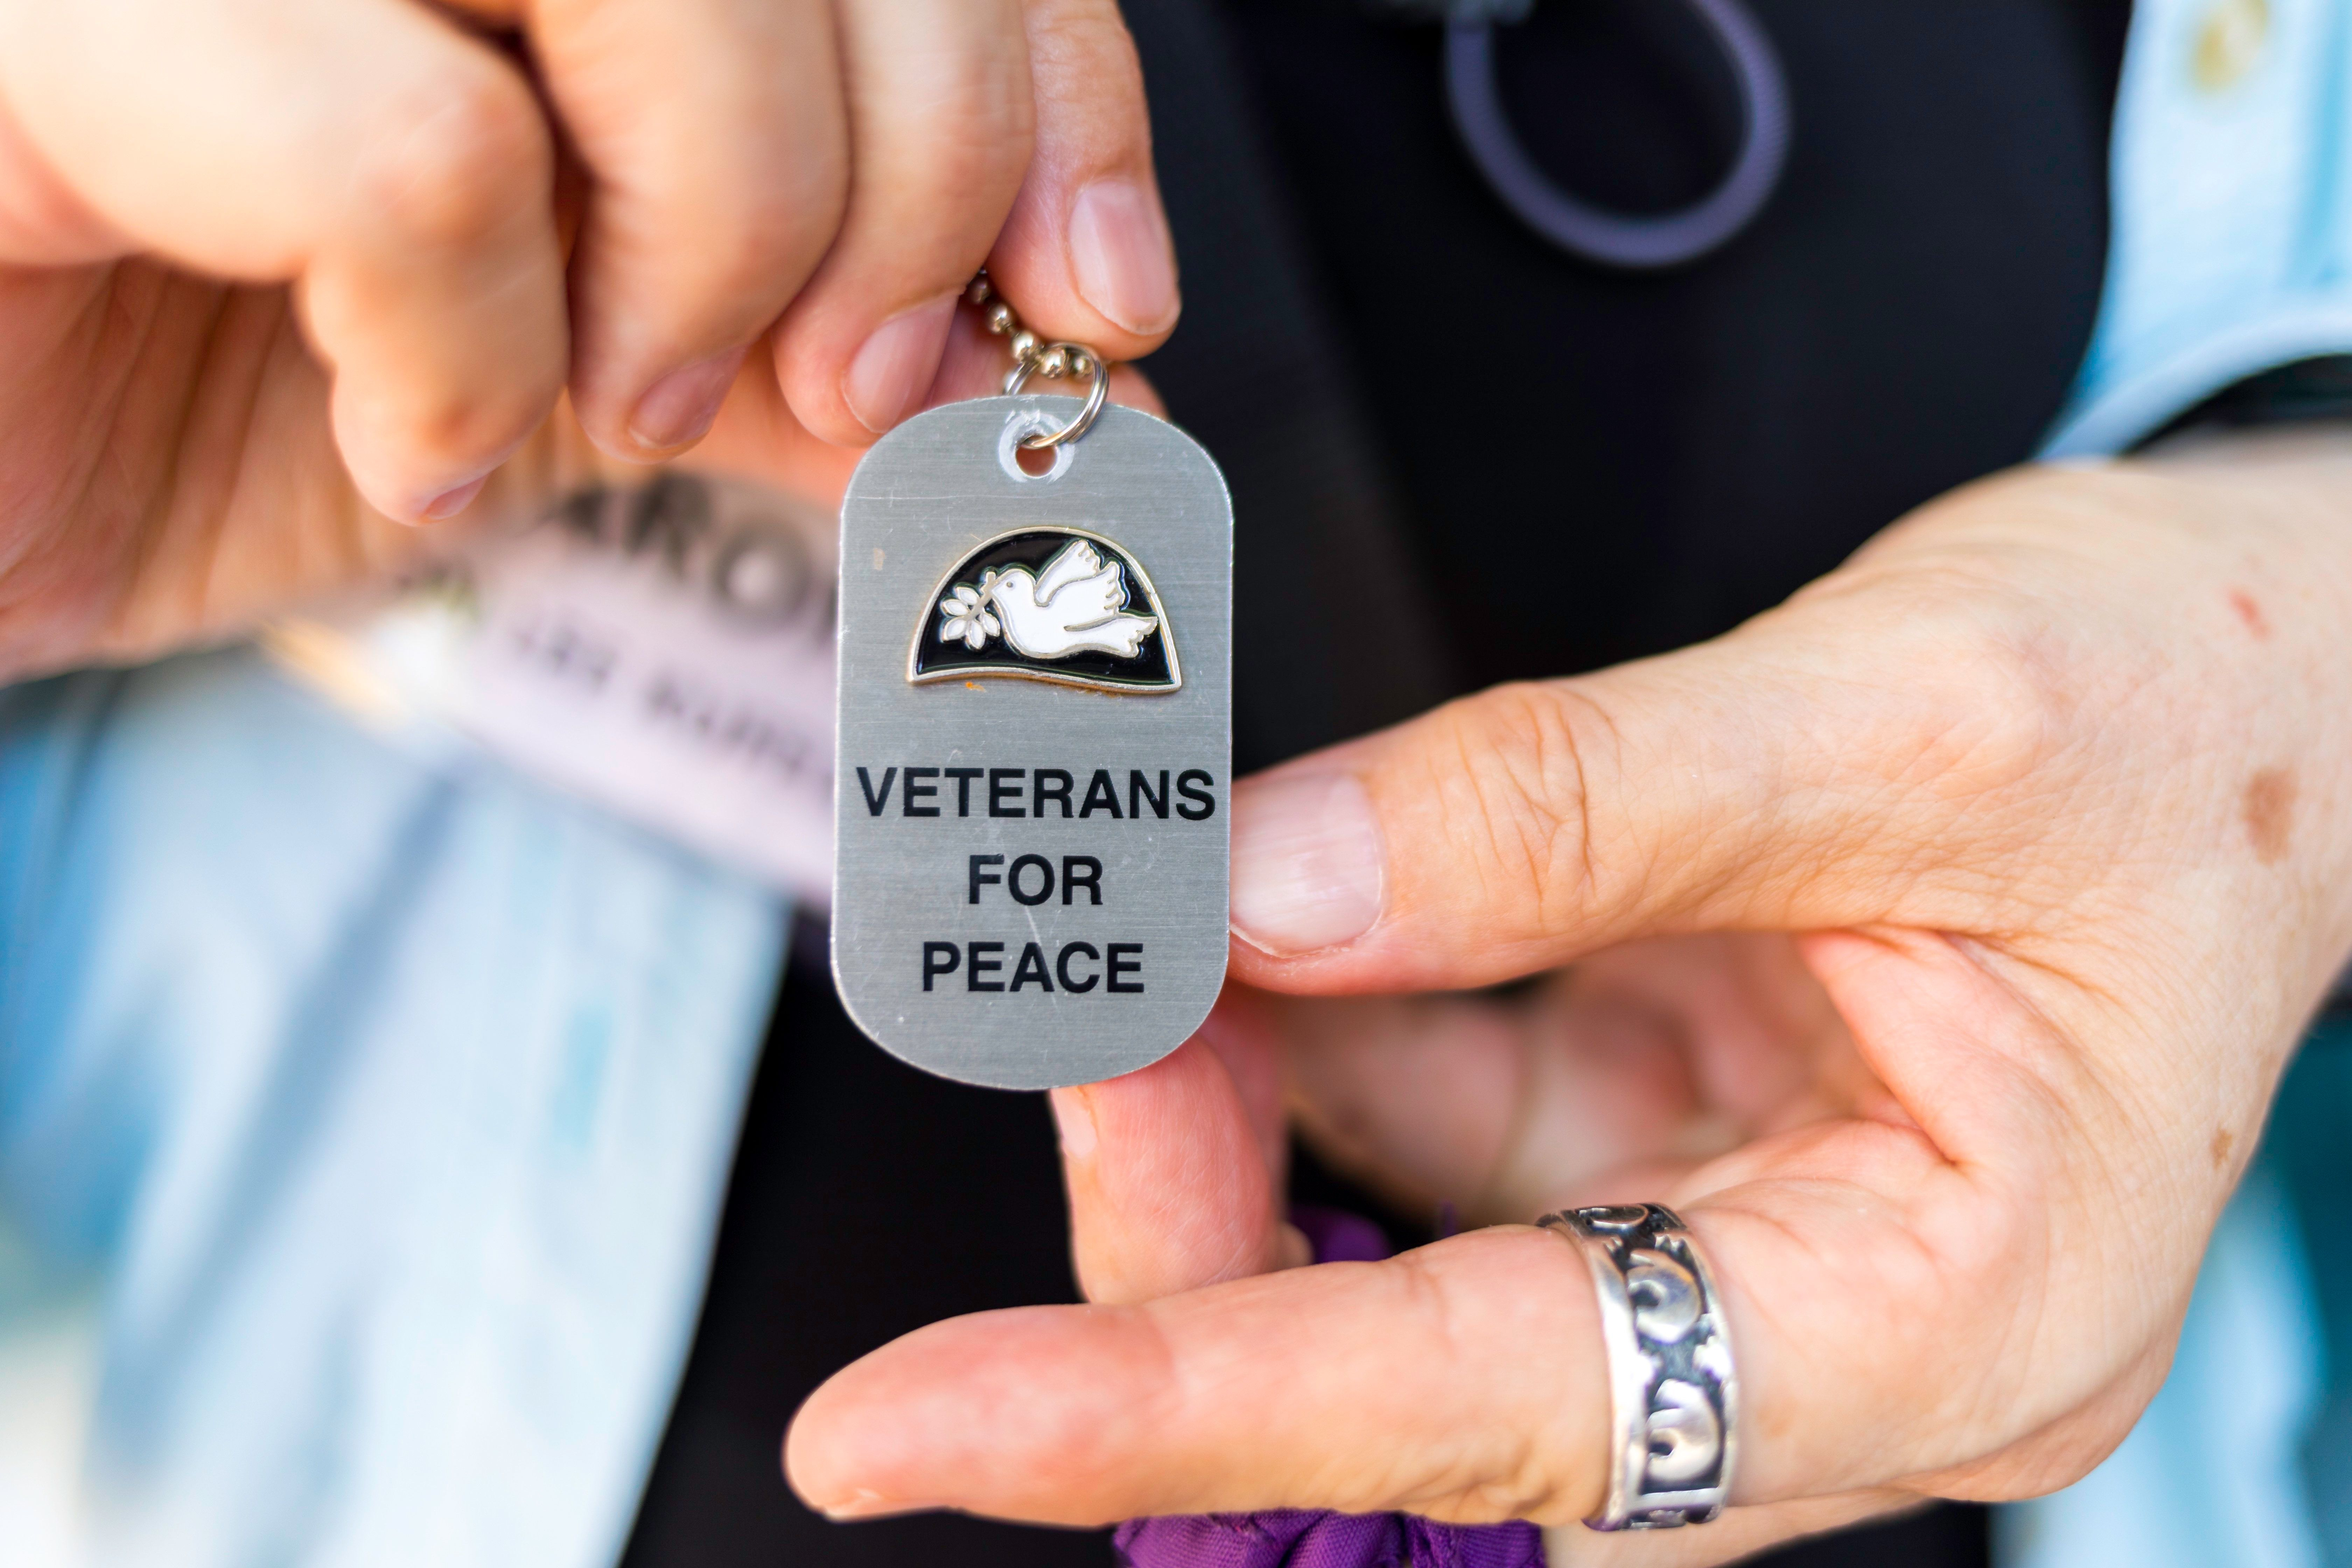 A participant on the Veterans for Peace tour of Vietnam shows a necklace she wears with the group's name on it.